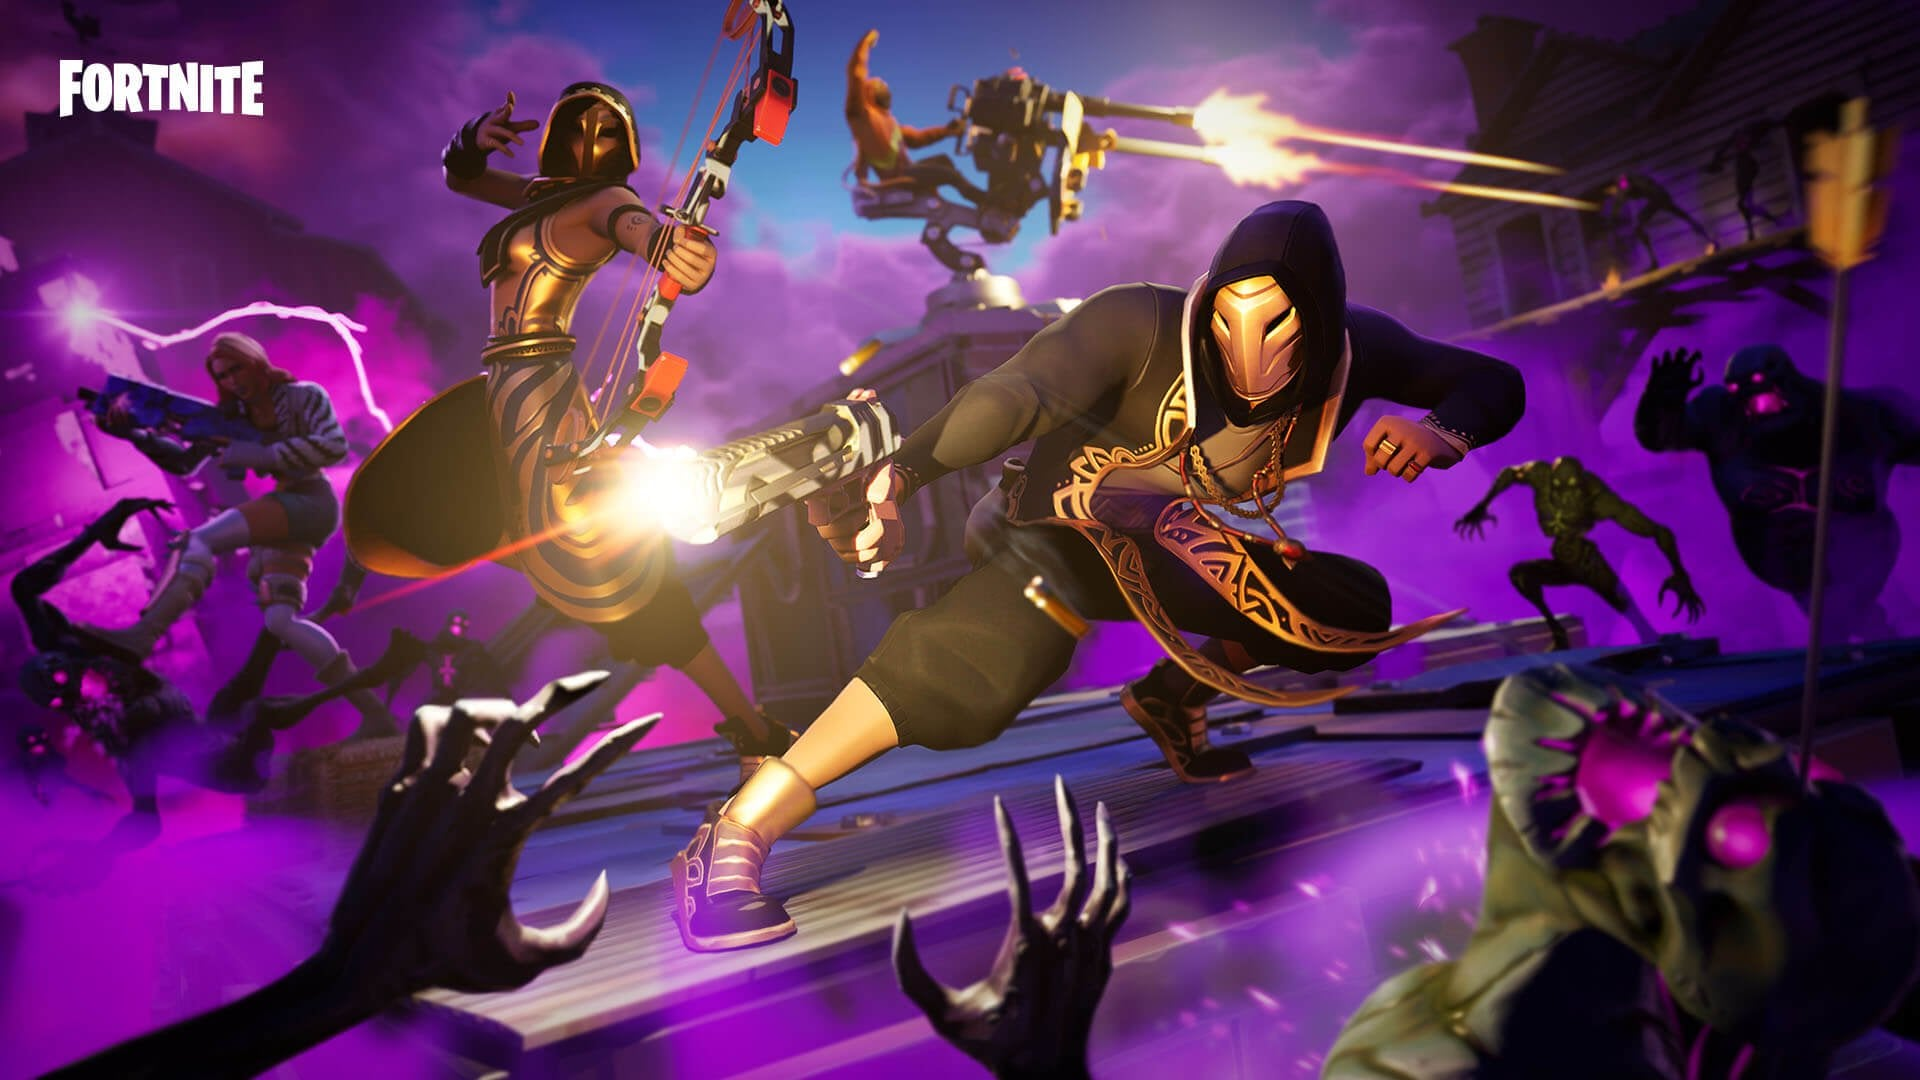 Fortnite Update Version 2.26 Patch Notes v9.30 For PS4 Xbox One PC Full Details Here 2019